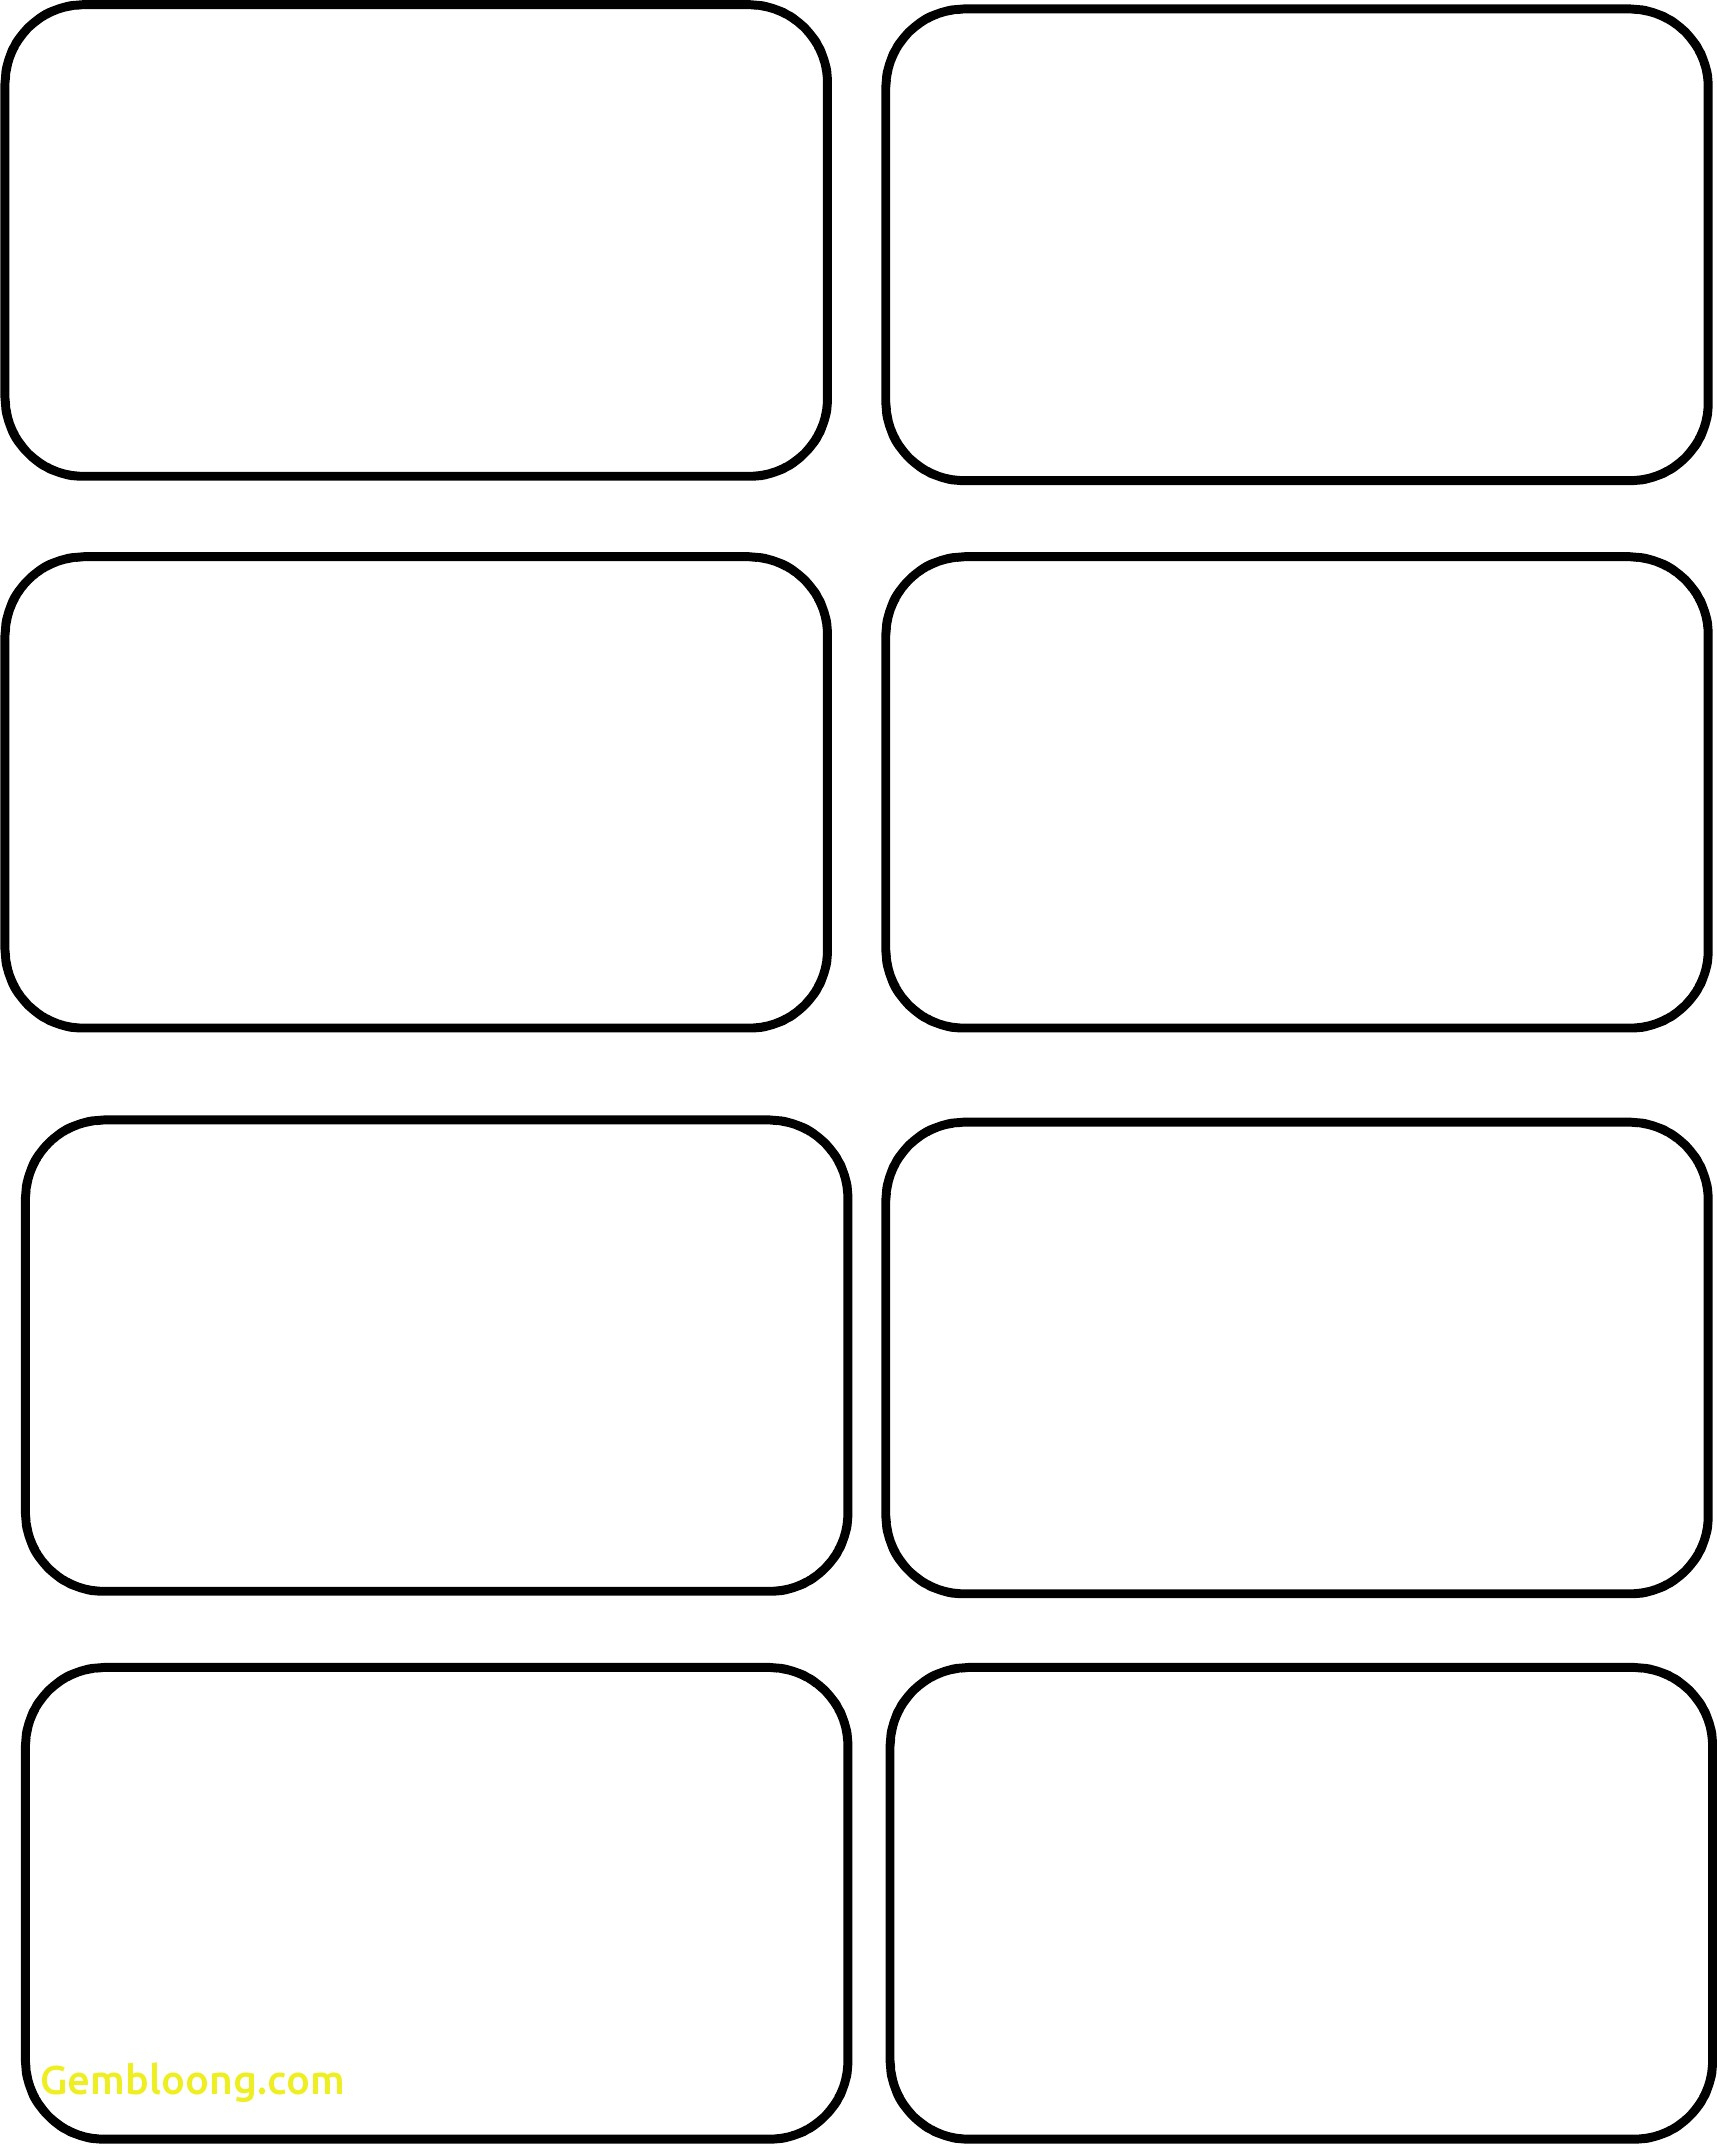 New Name Labels Templates Free - Tim-Lange - Name Tag Template Free Printable